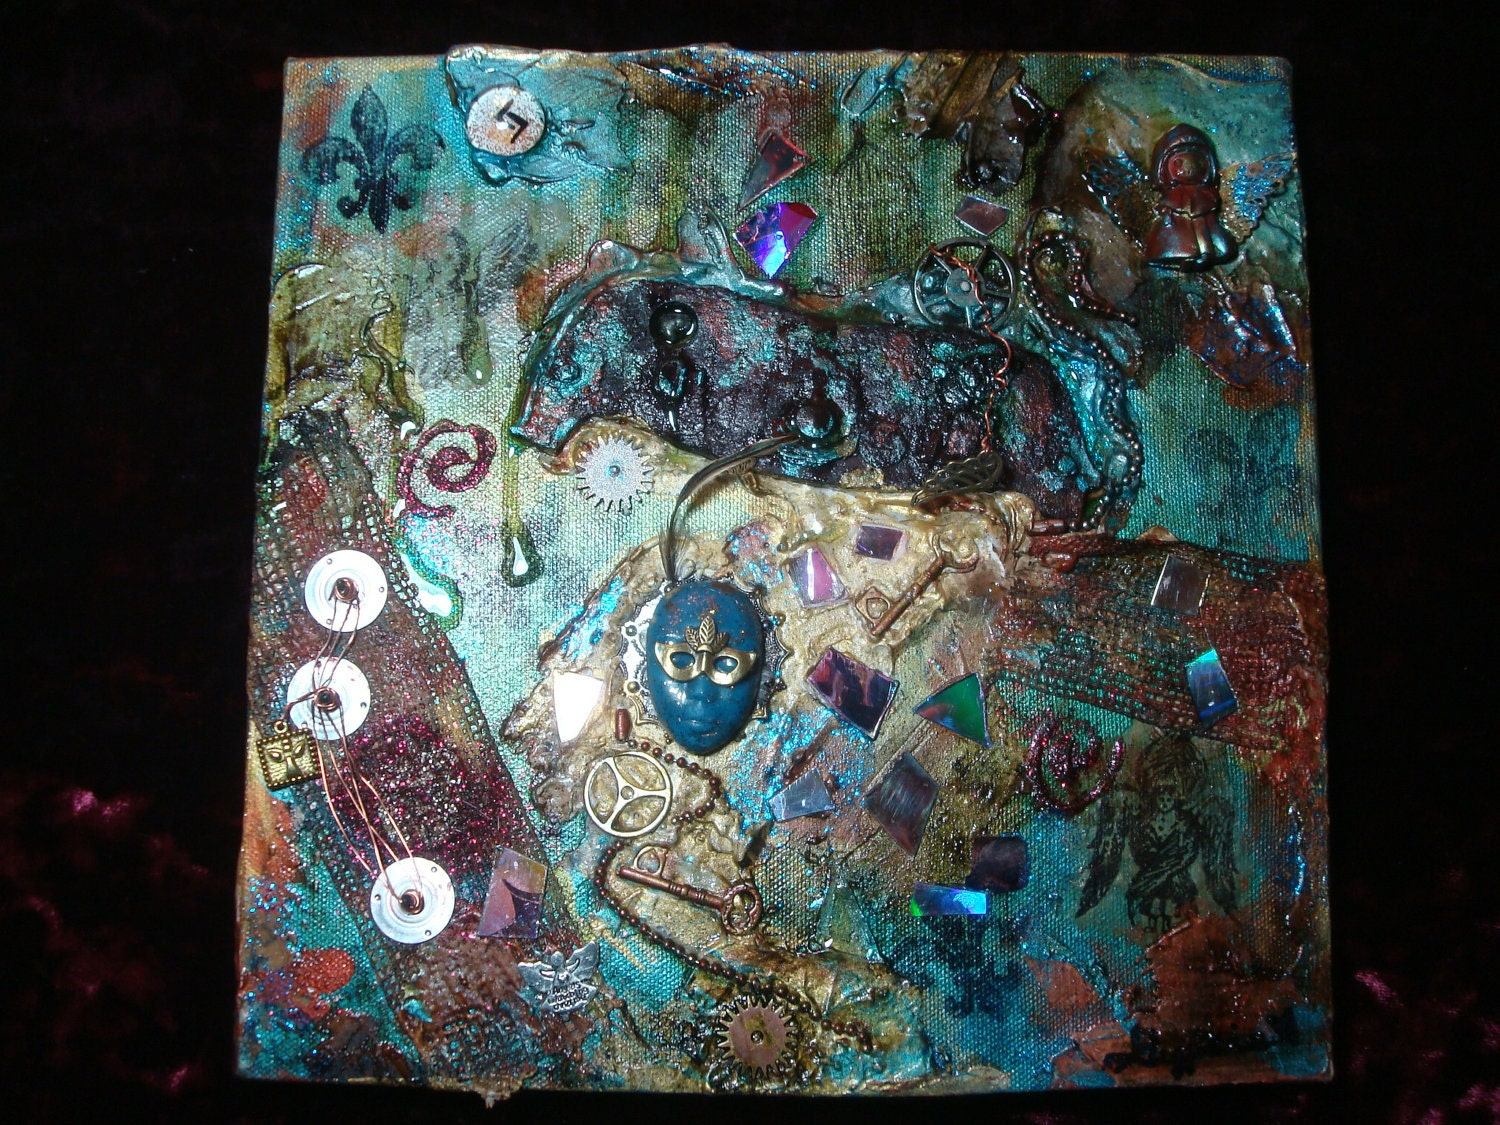 Steampunk Mixed Media Abstract Painting by Gypsie